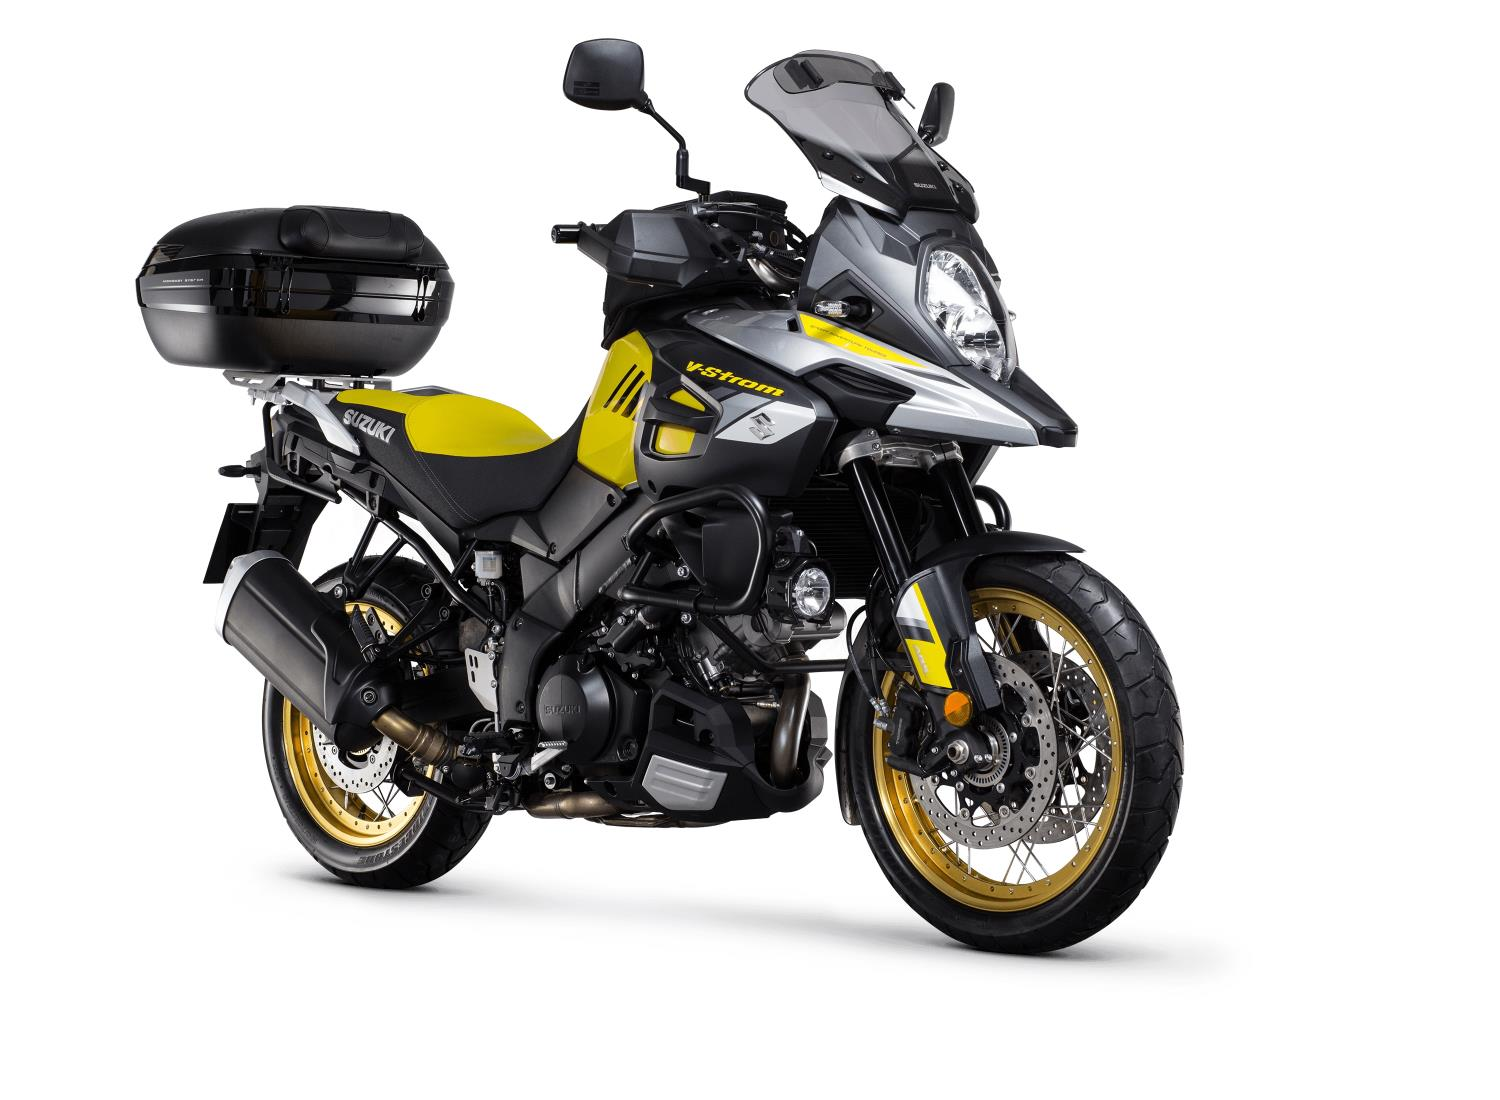 2018 Suzuki V-Strom 1000 India launch in September - Report